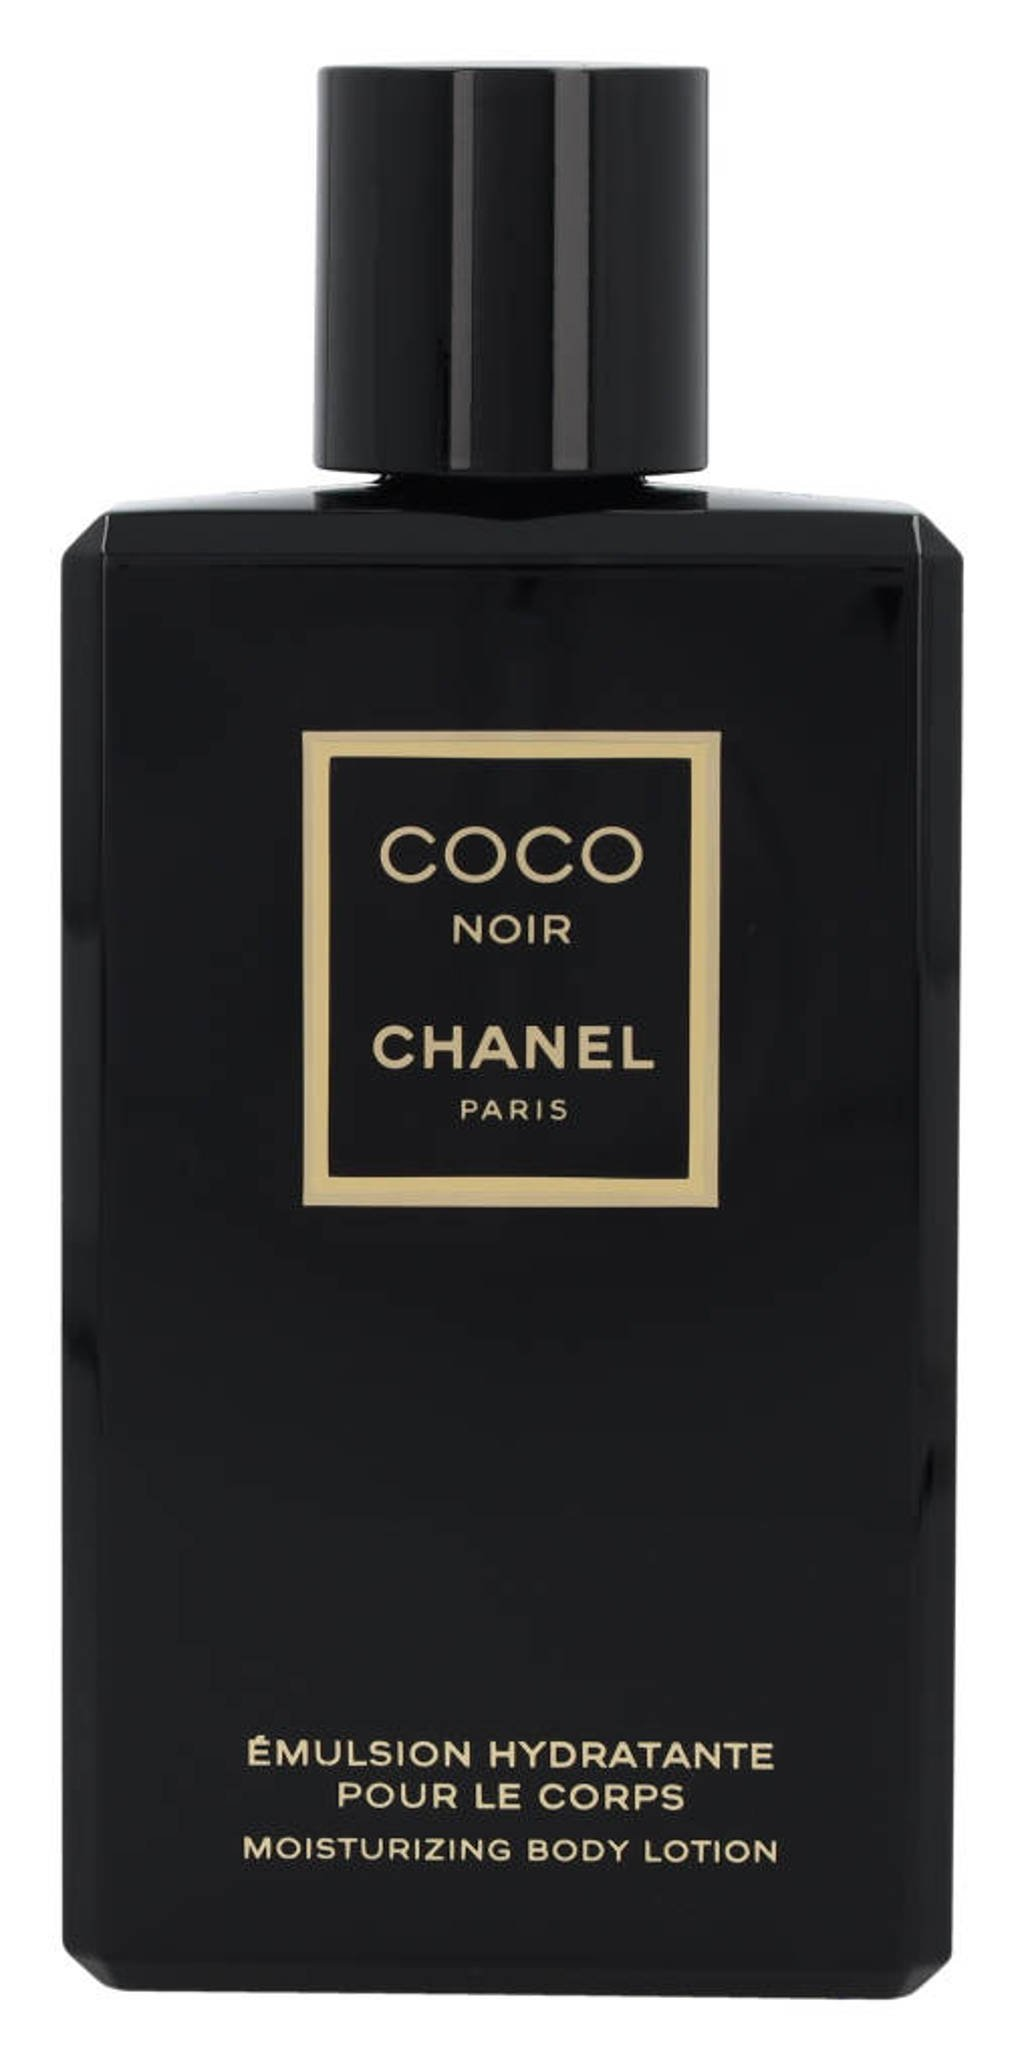 Chanel Coco Noir bodylotion